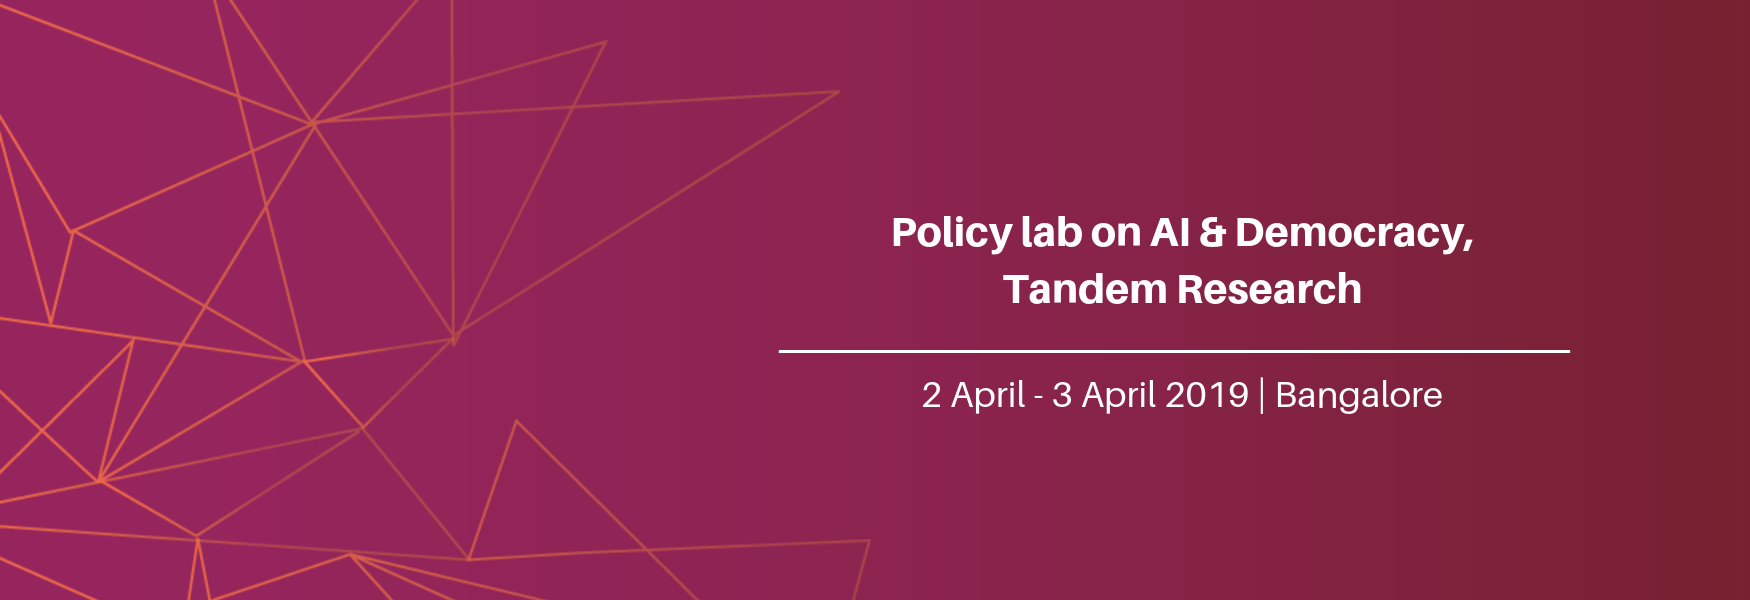 Policy lab on AI & Democracy